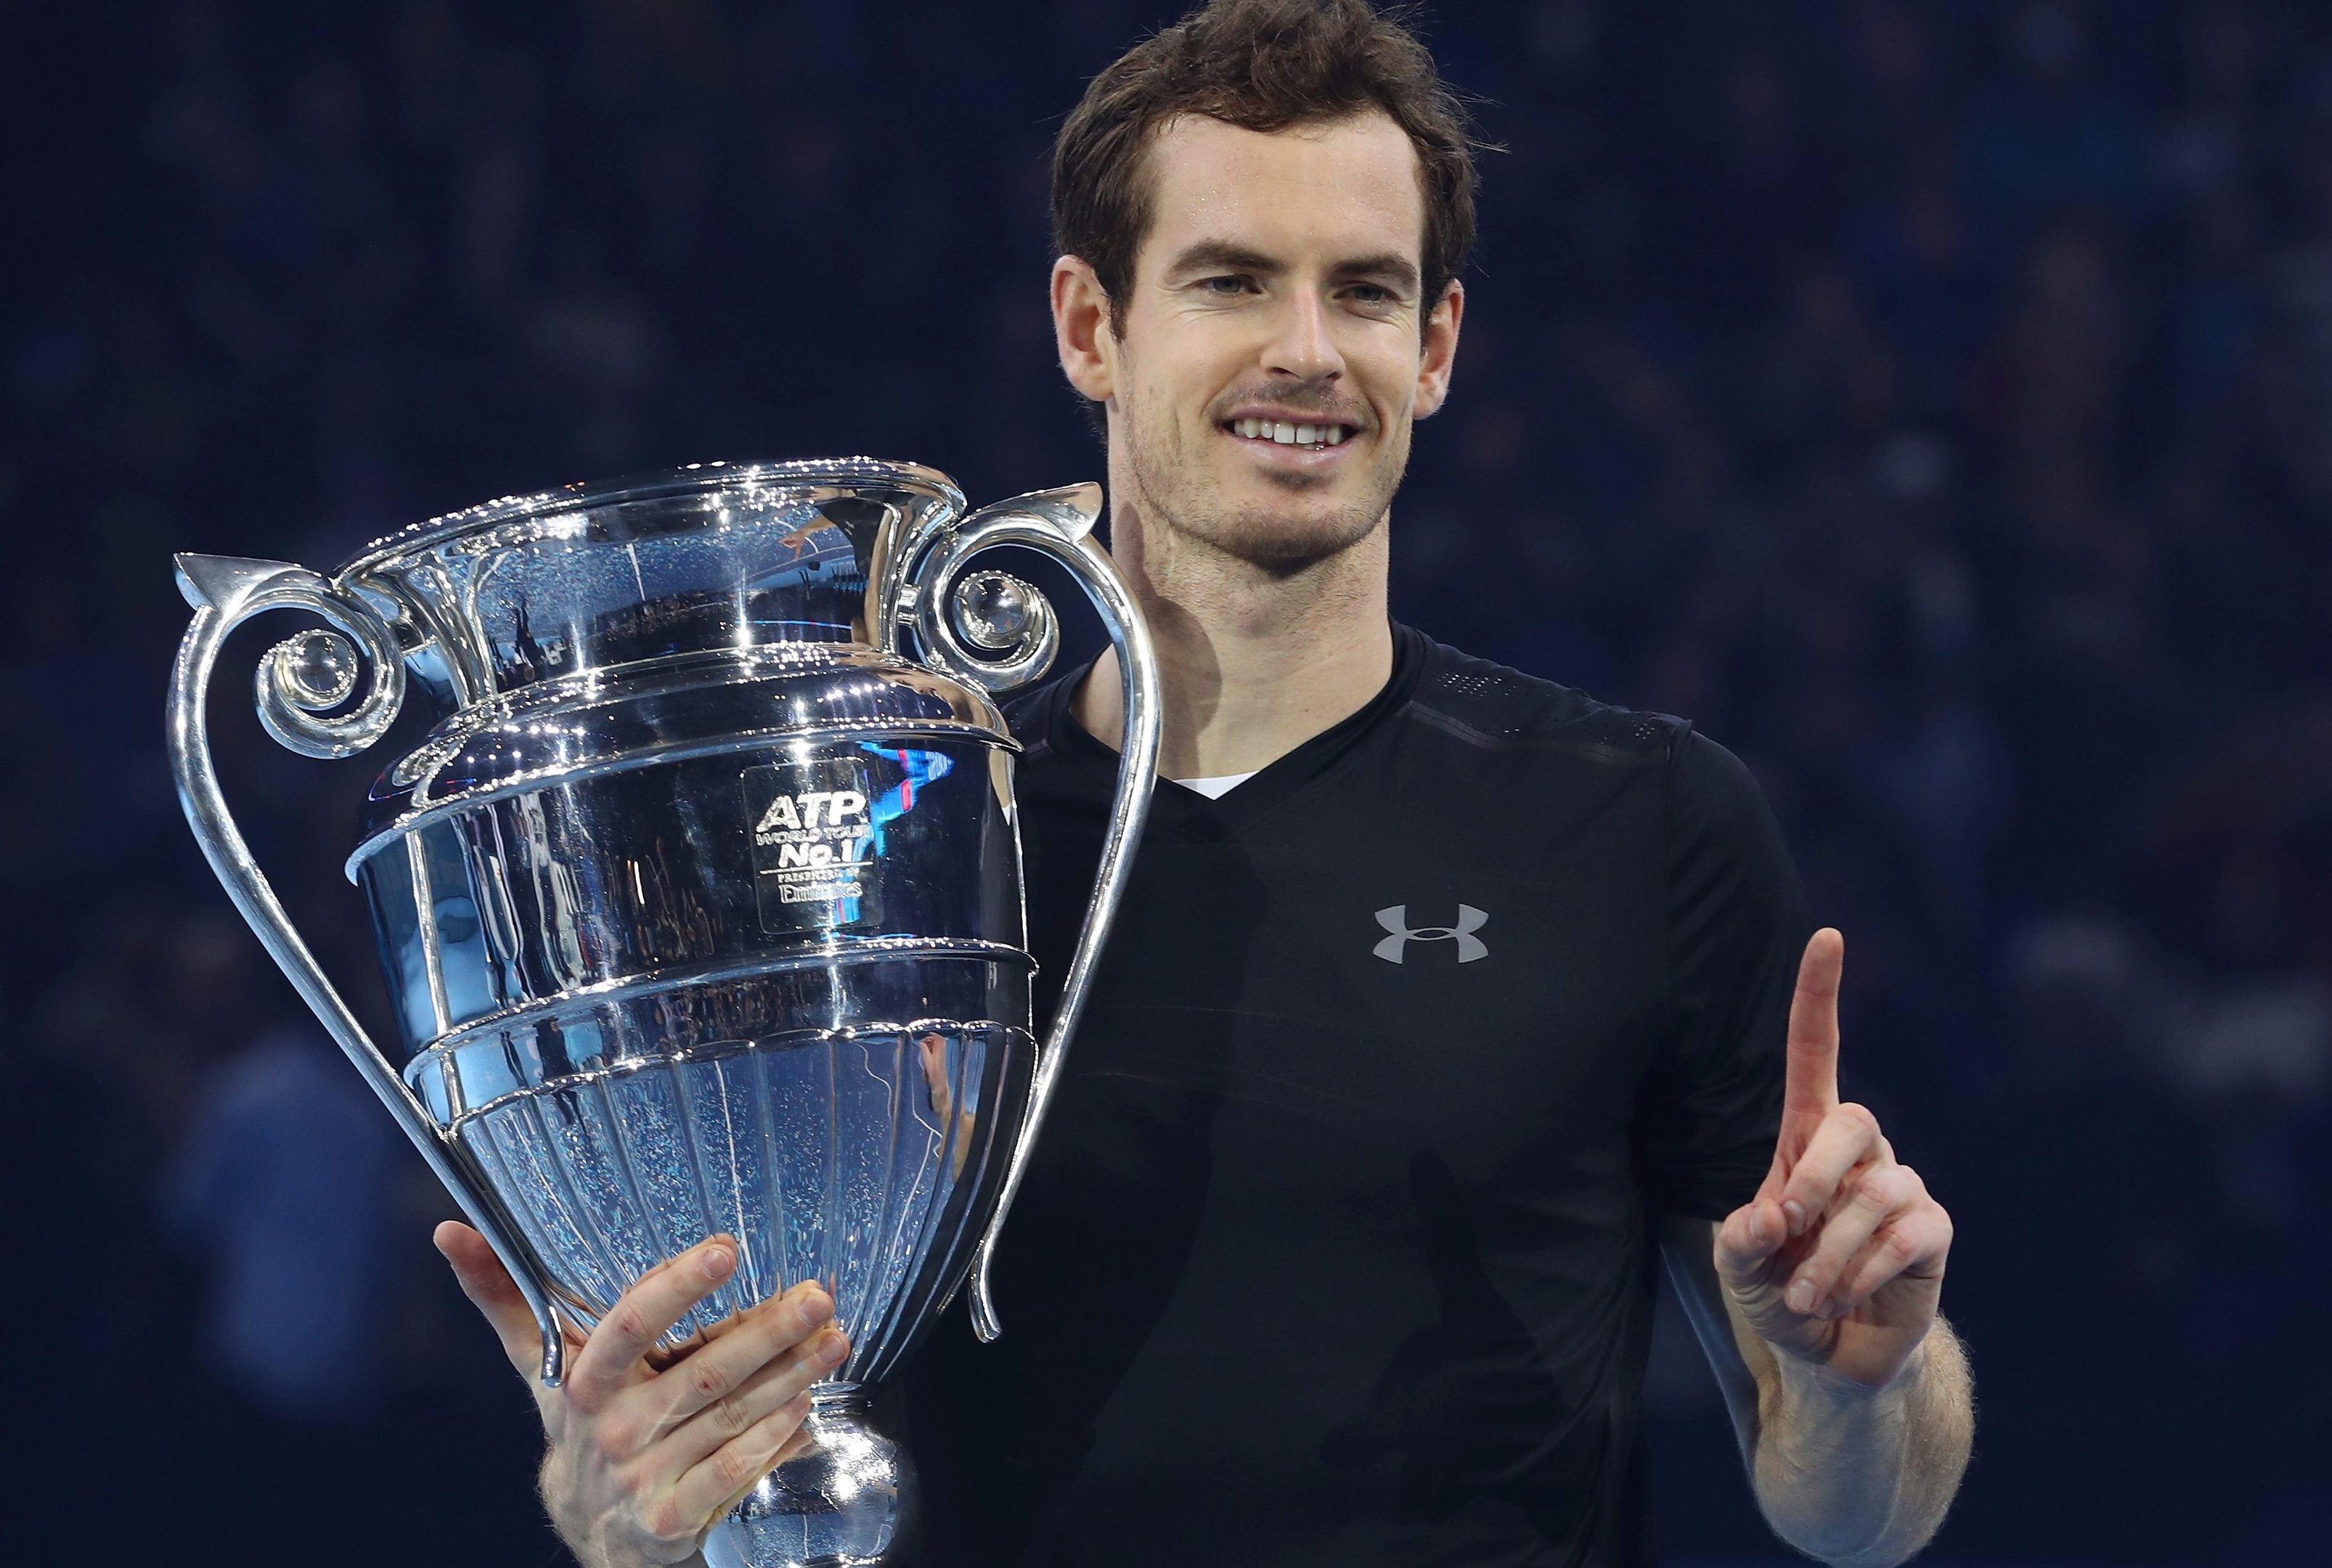 Andy Murray shows off his winner's trophy.